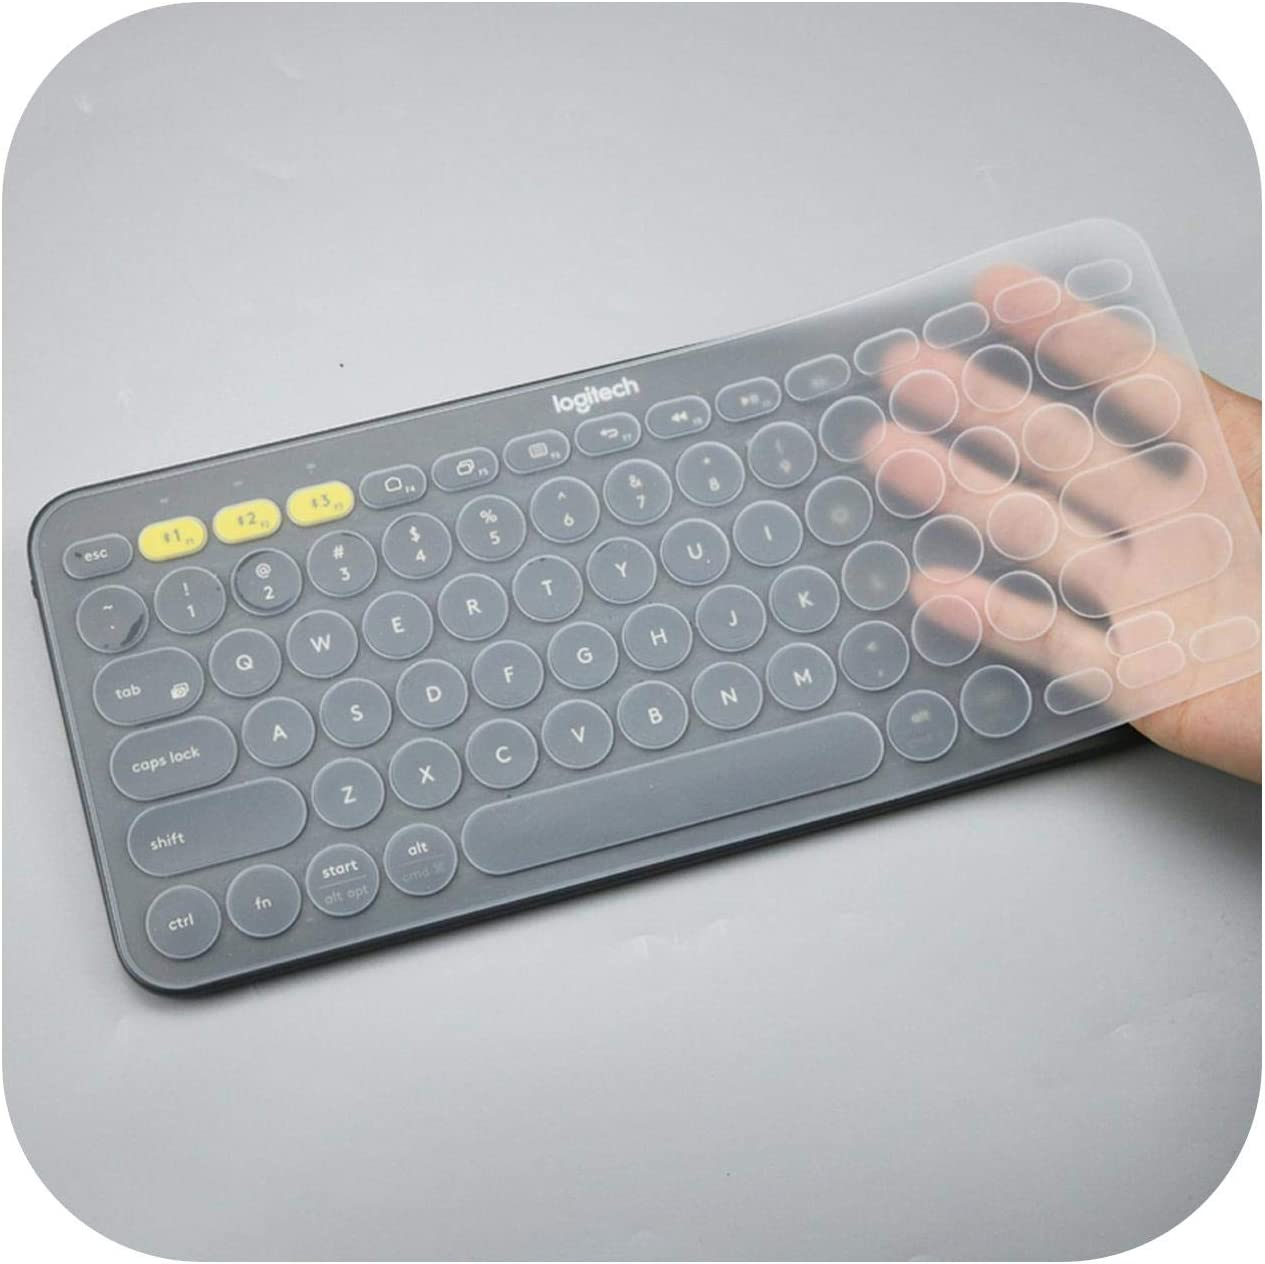 2020 Ultra Thin Silicone Laptop Keyboard Cover Skin Protector for Logitech K380 Keyboard-Whiteblue